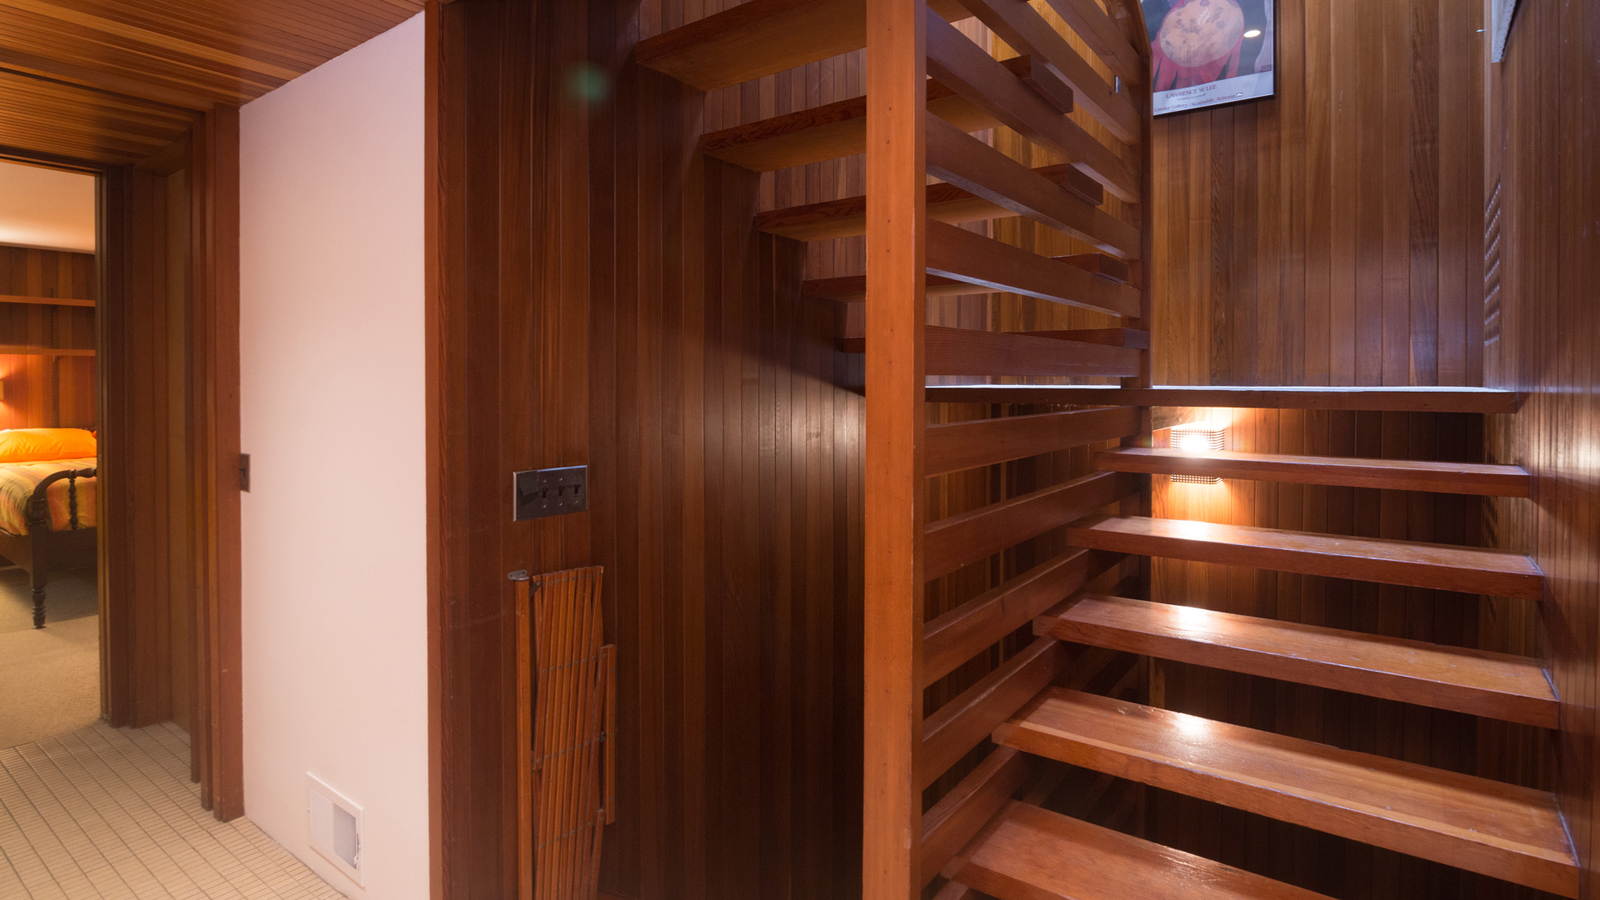 The Tivadar and Dorothy Balogh House staircase is made from red cedar